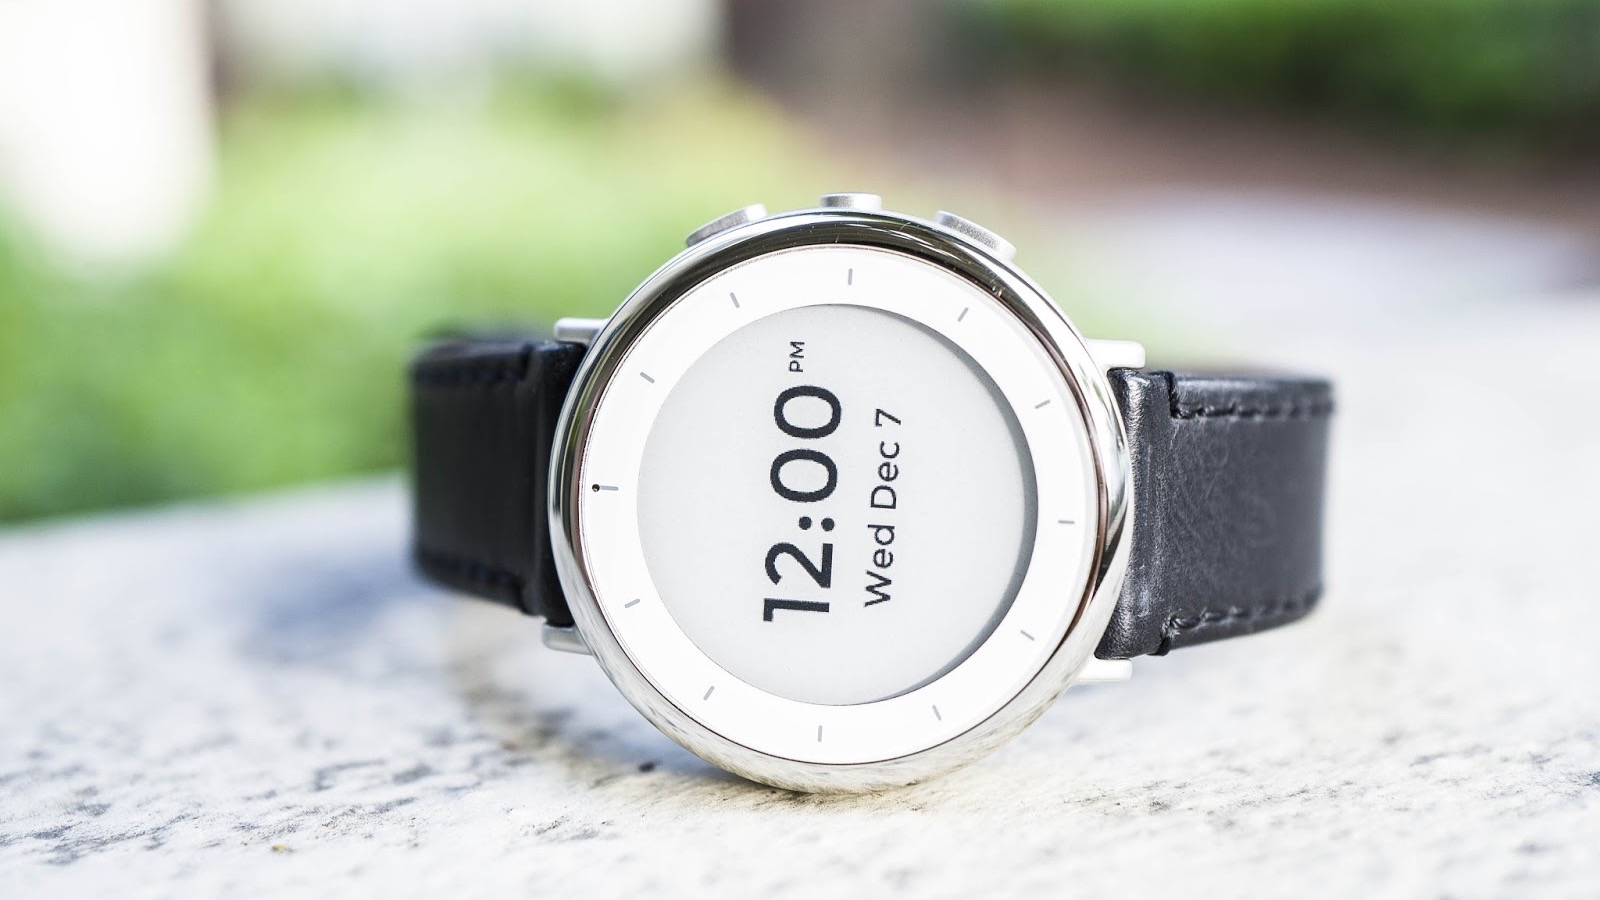 Alphabet's life sciences branch made a sleek smartwatch for robust health tracking